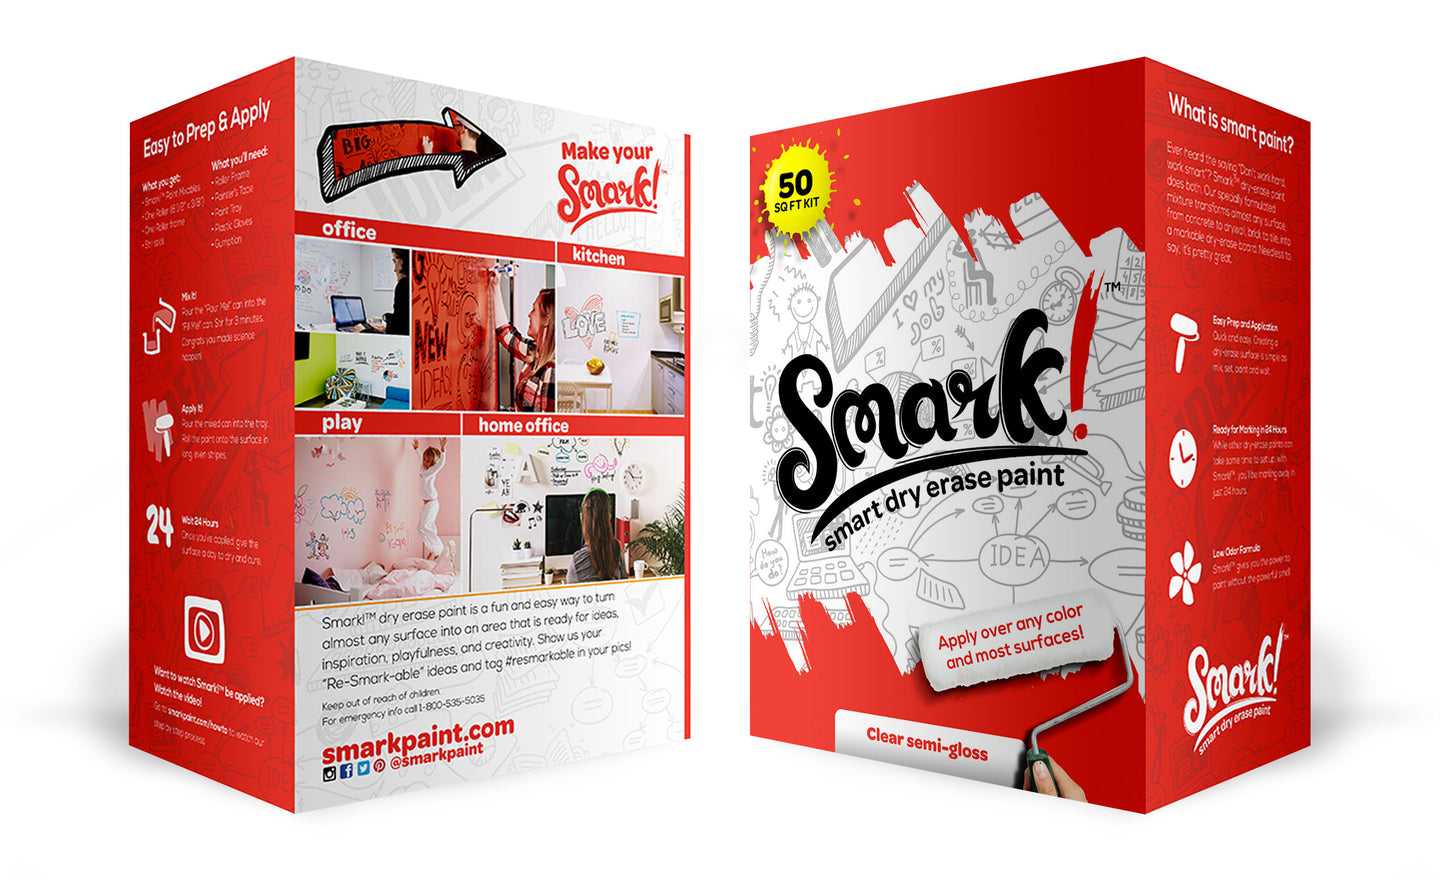 Smark! Dry Erase Paint | 50 Square Feet